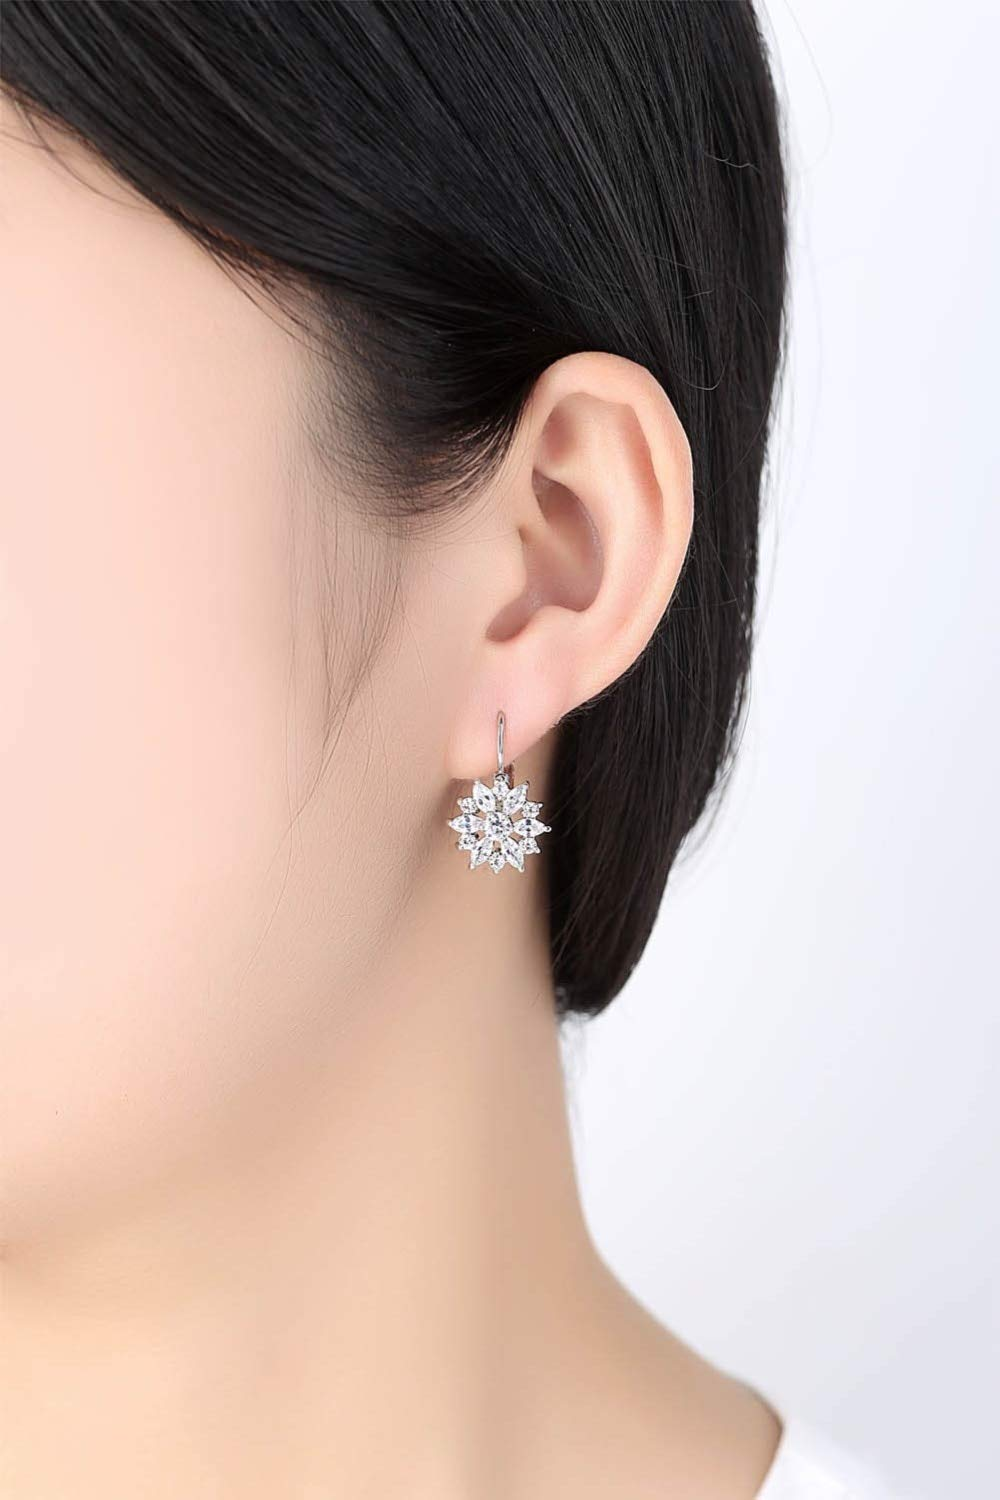 c0306f026 Amazon.com: 2019 New Wild Rose Gold Hypoallergenic Earrings Original Crystal  from Swarovski Bella Mini Piercing Woman Earrings: Cell Phones & Accessories